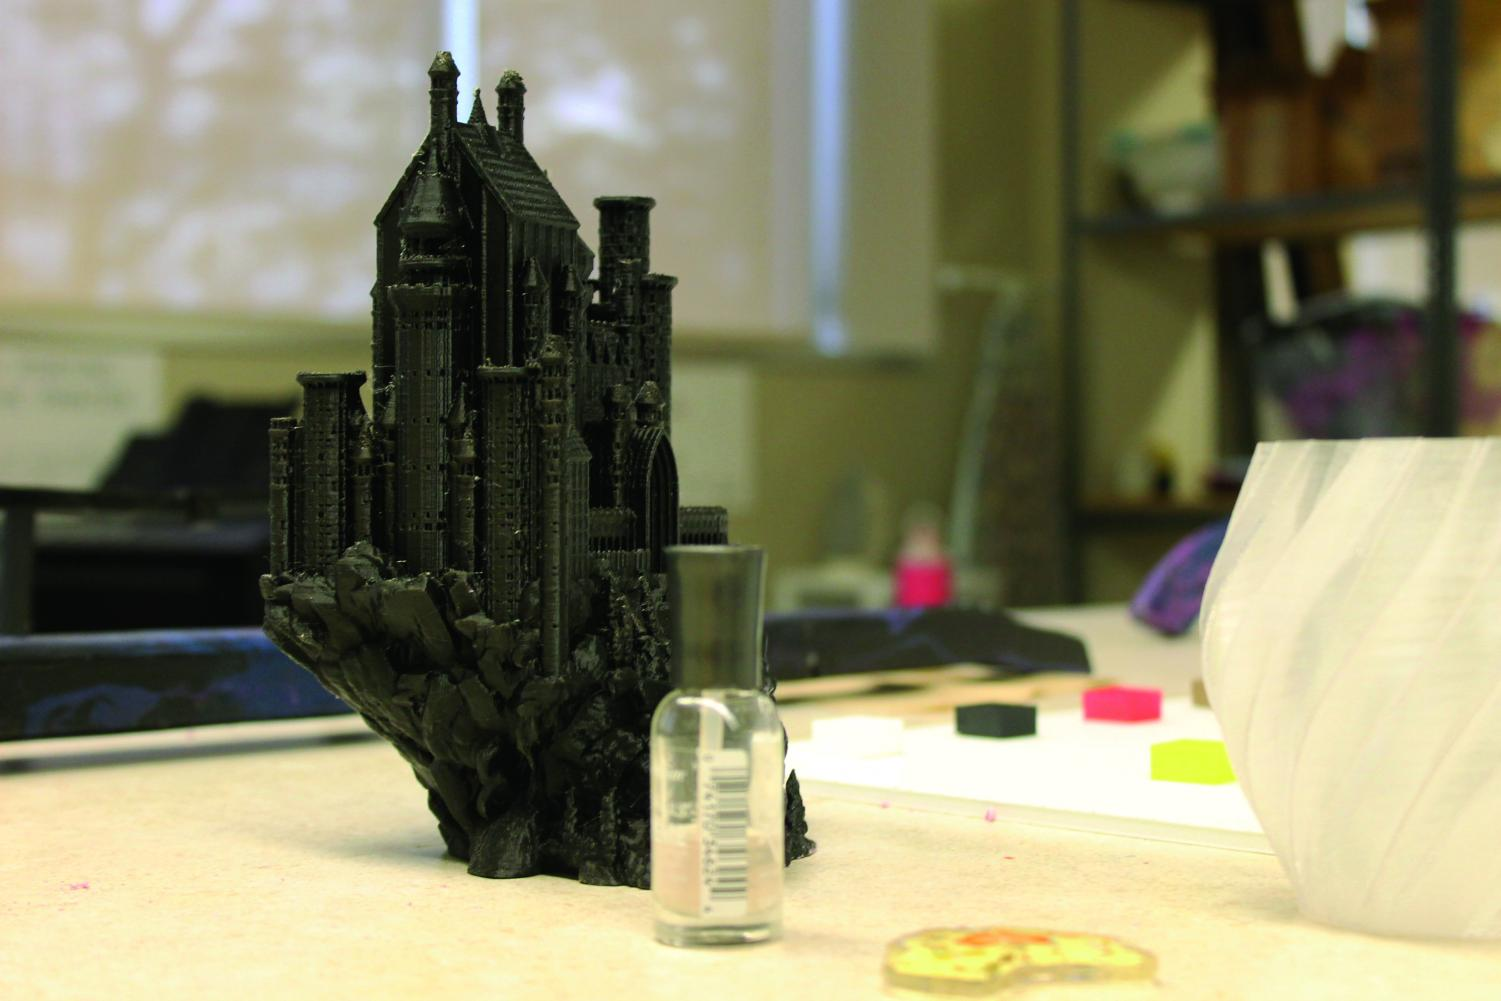 A 3D printed model of Harry Potter's Hogwarts in the Luther College makerspace.